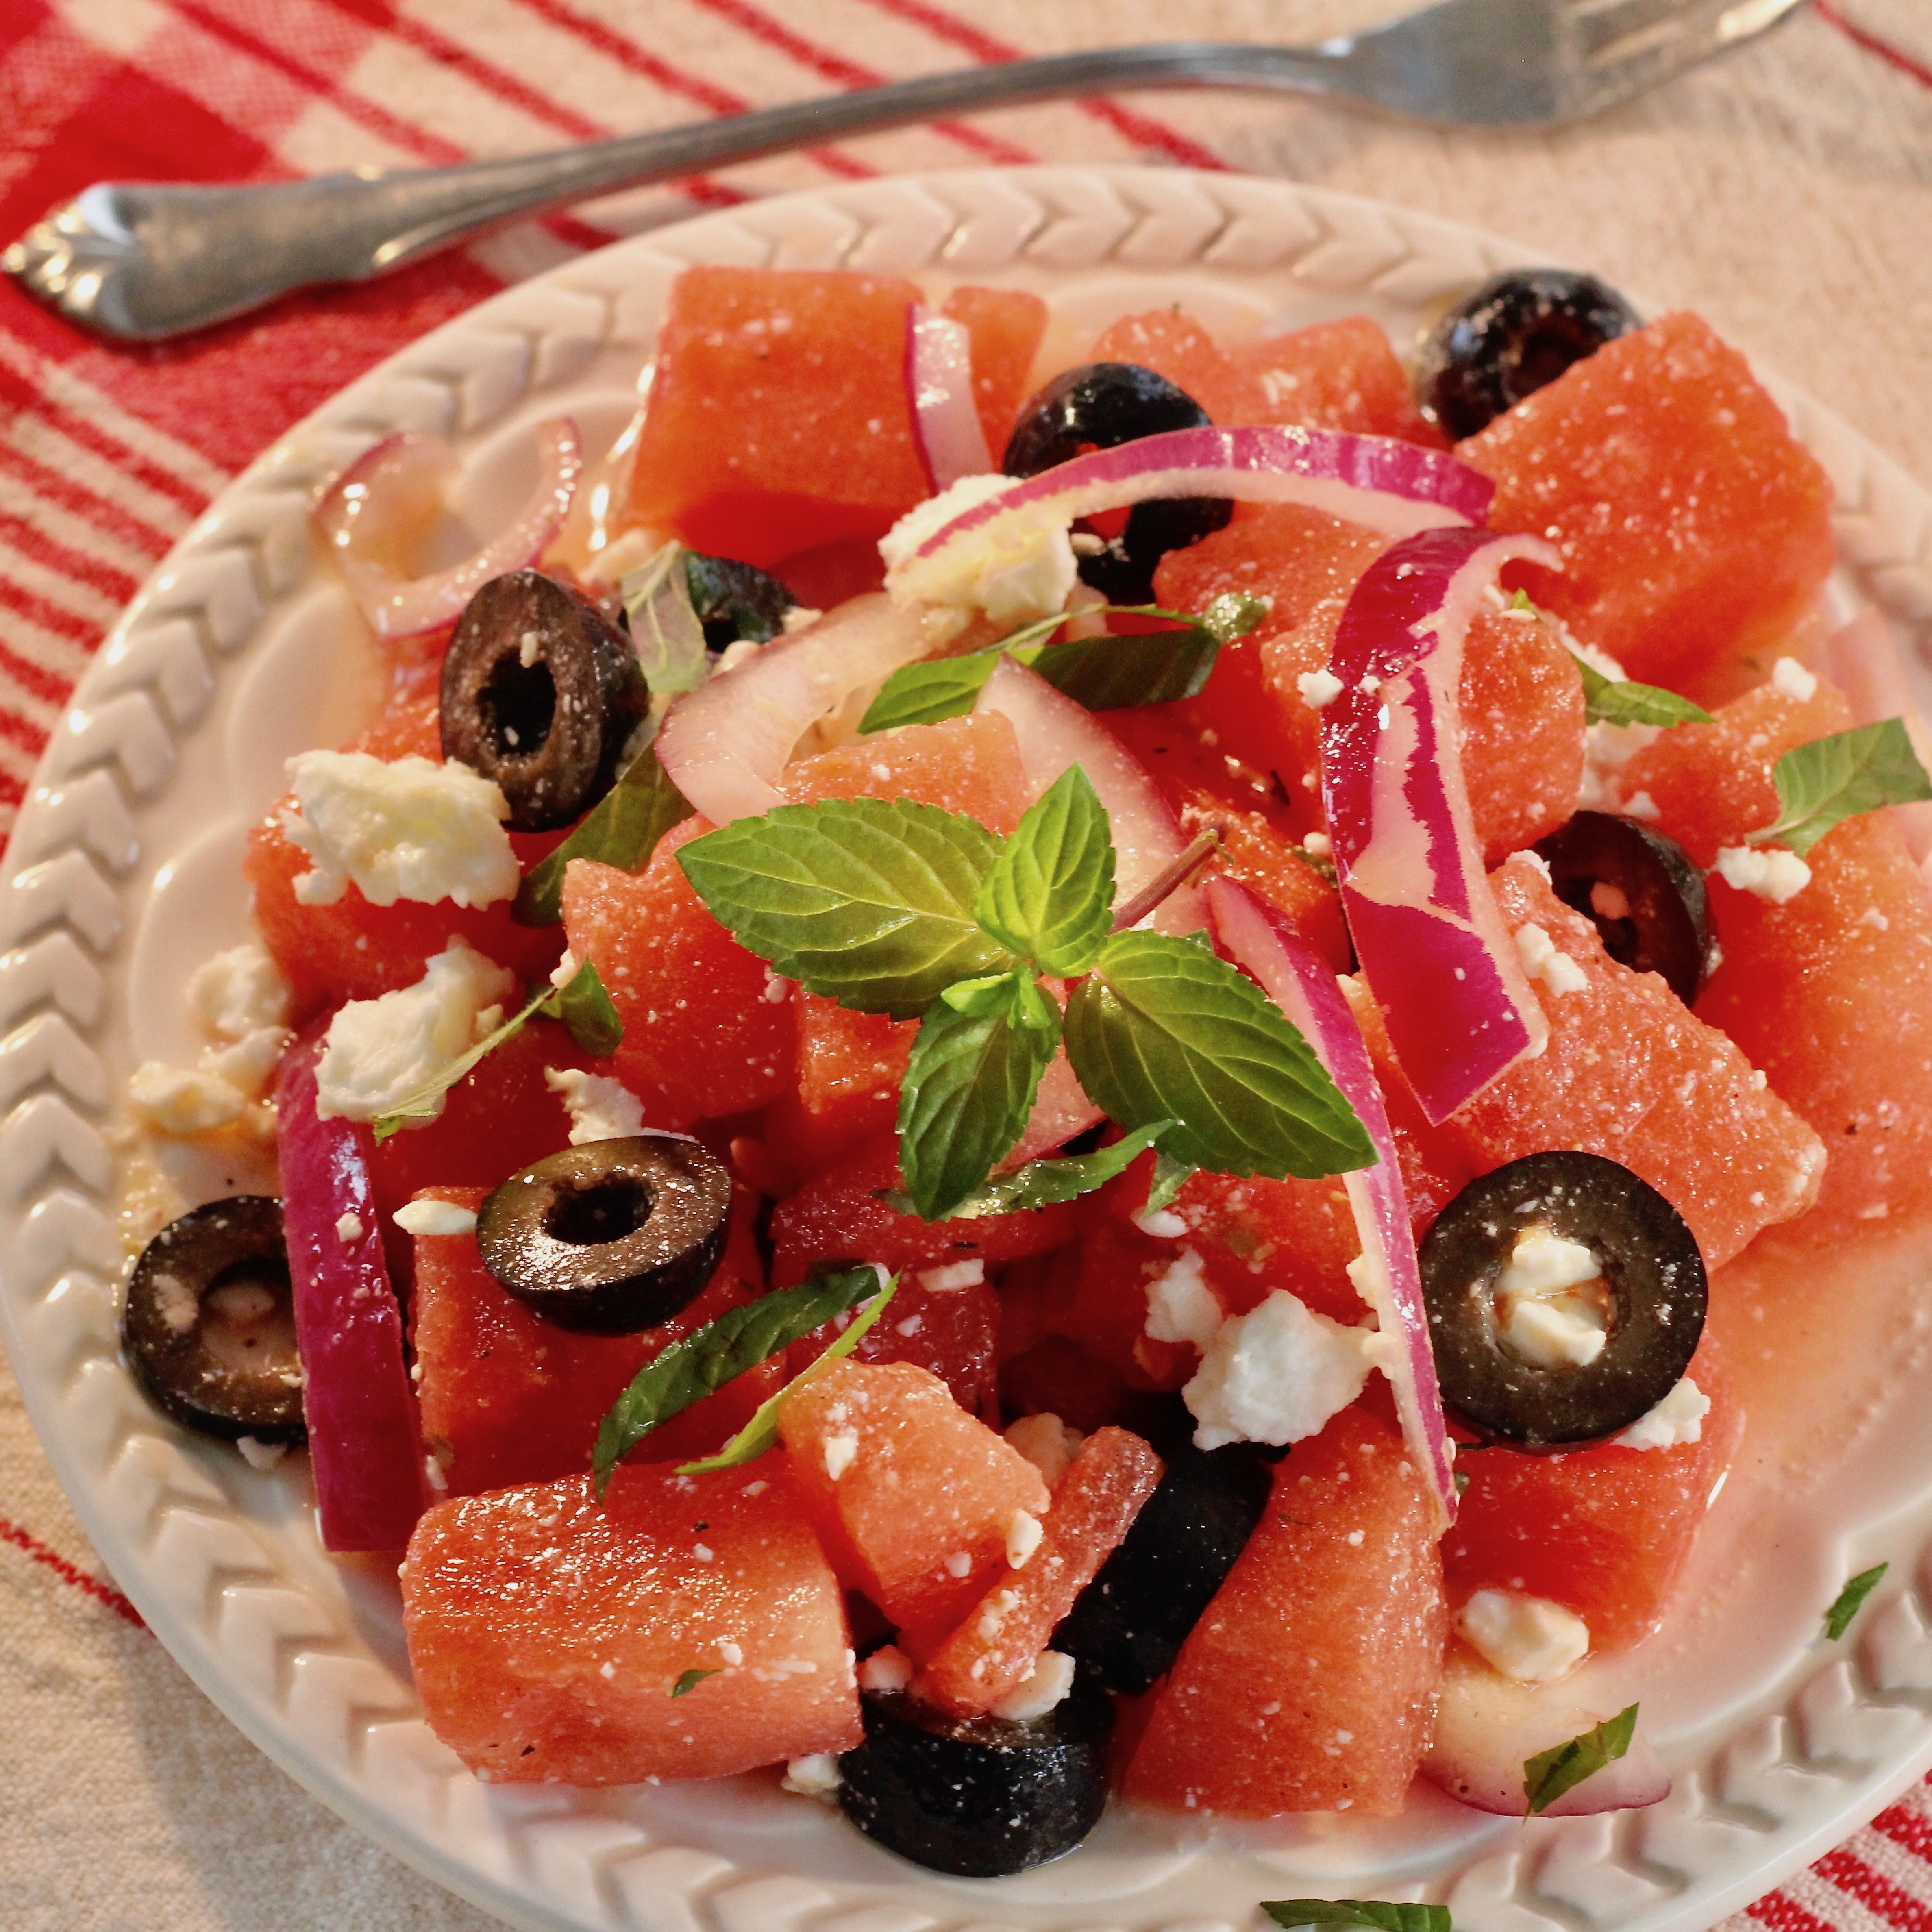 Watermelon Salad with Mint Dressing laurenholly2008